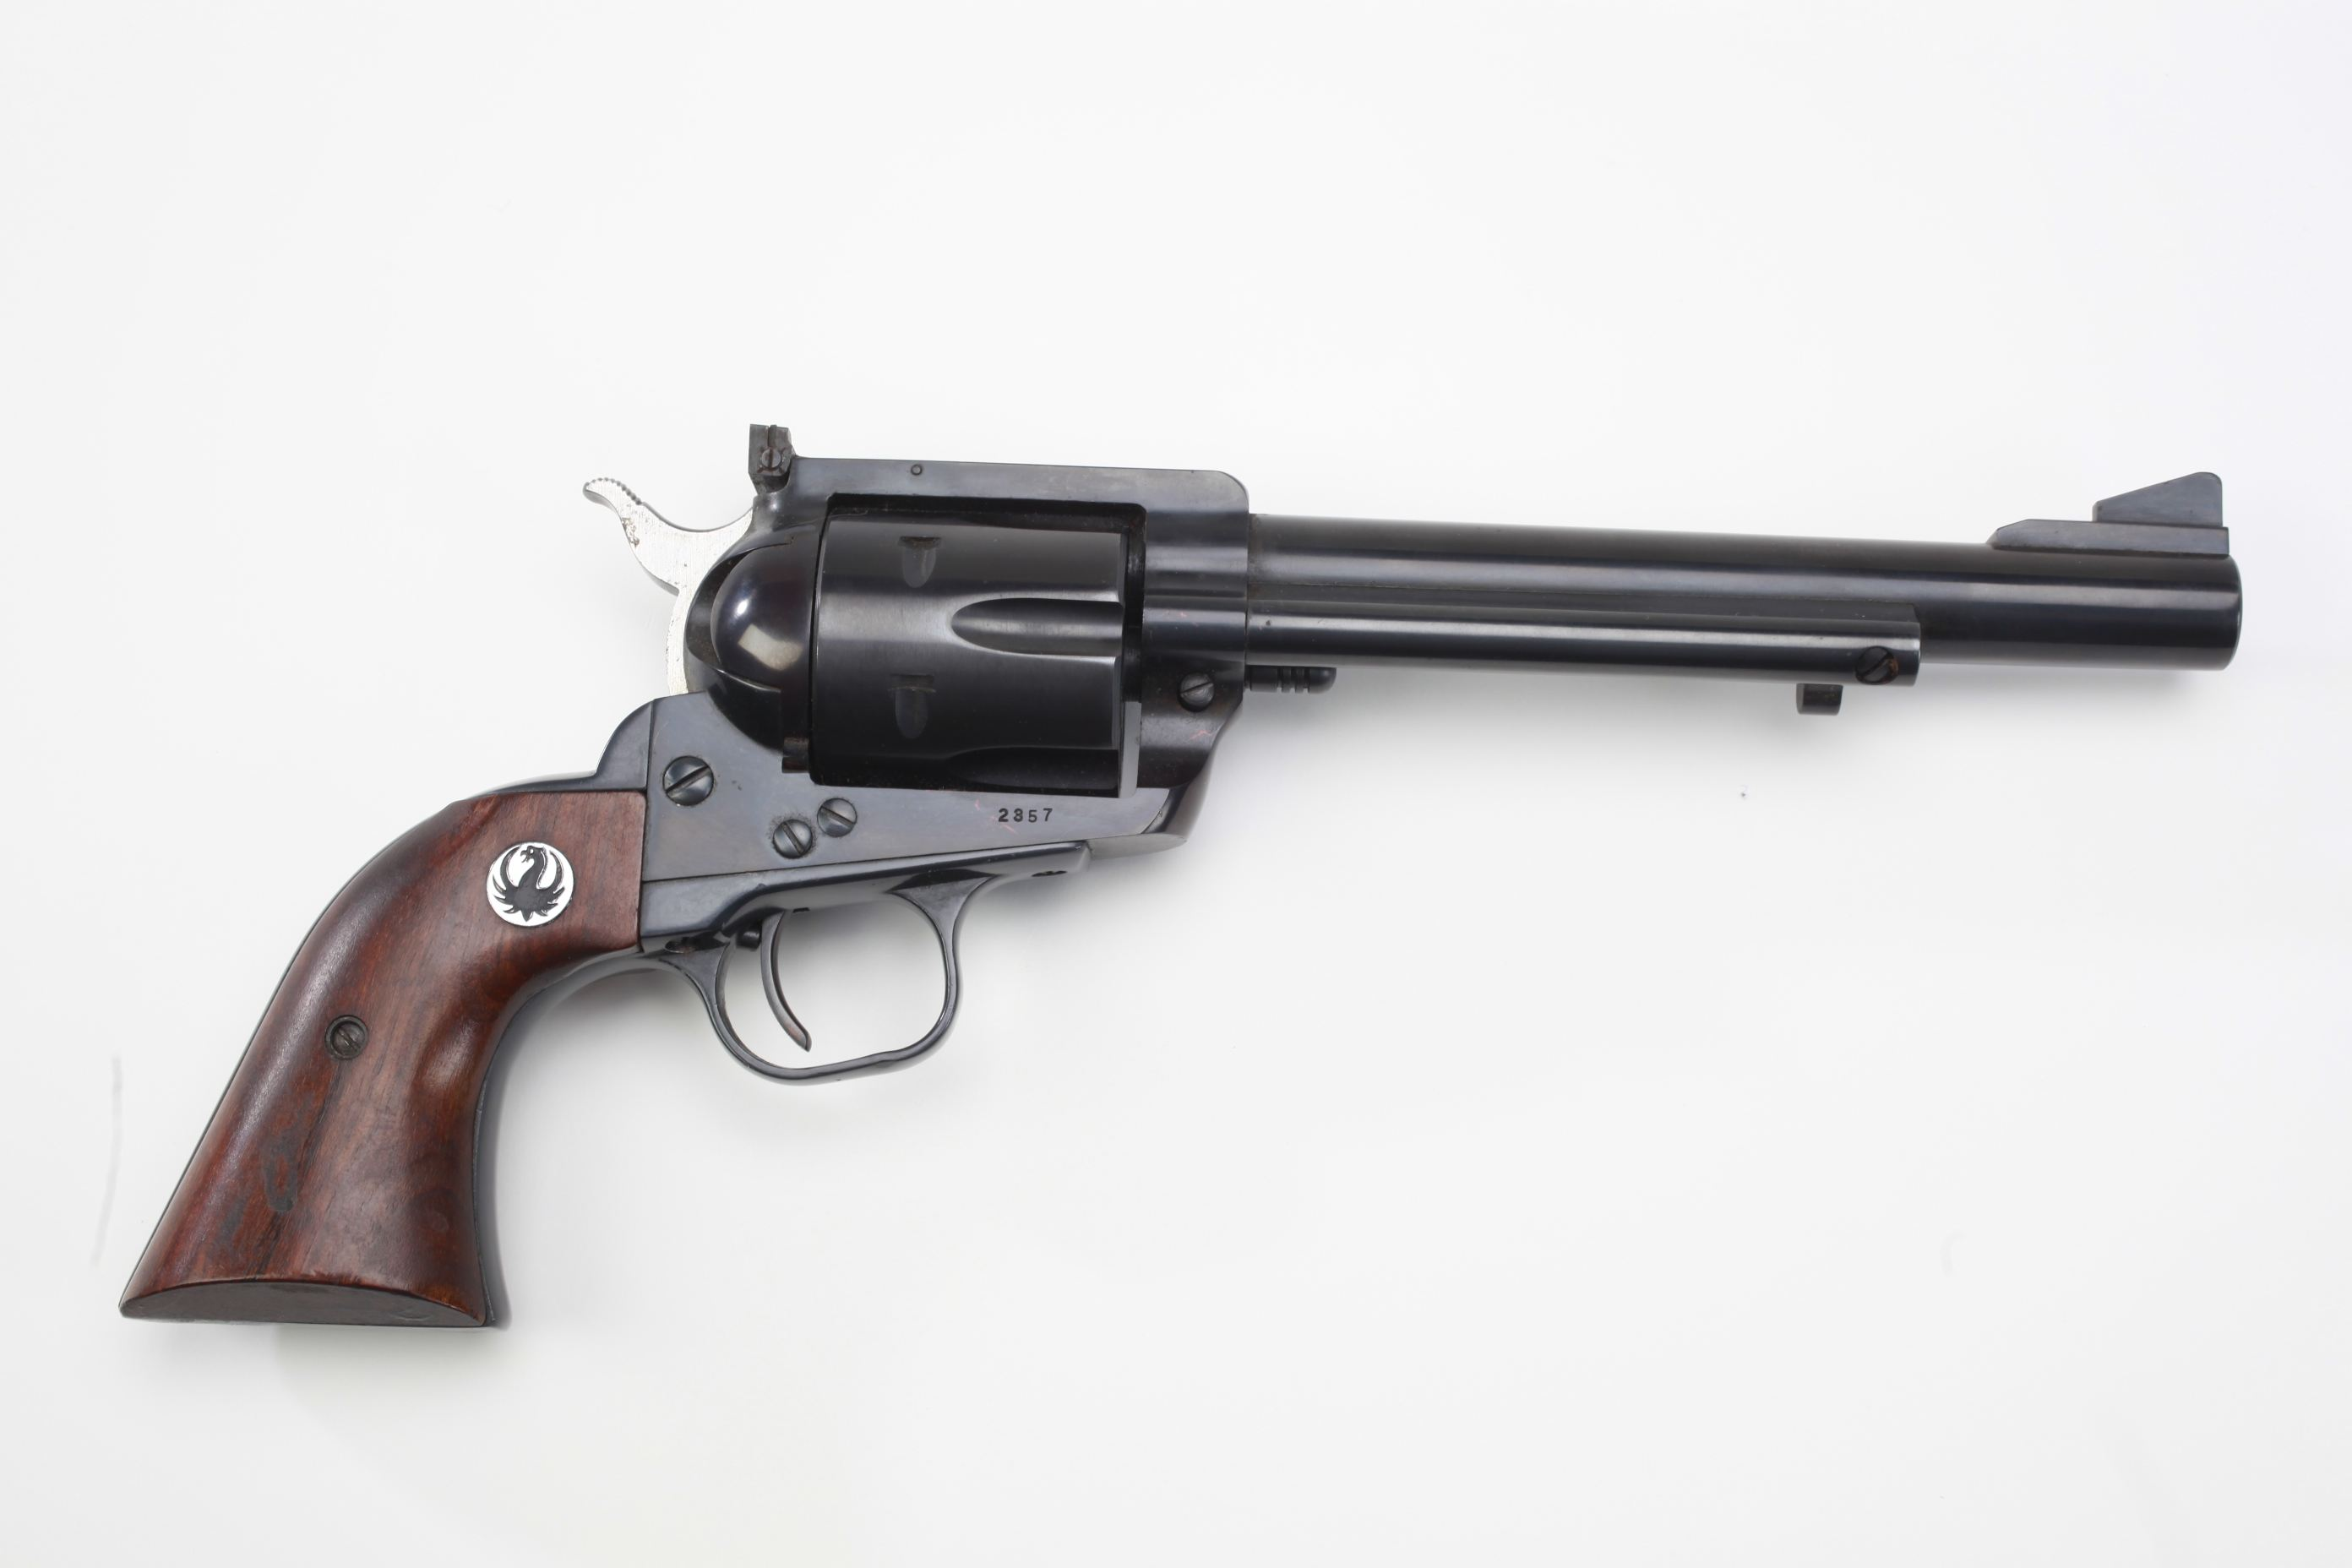 Ruger and Co Old Model Blackhawk revolver